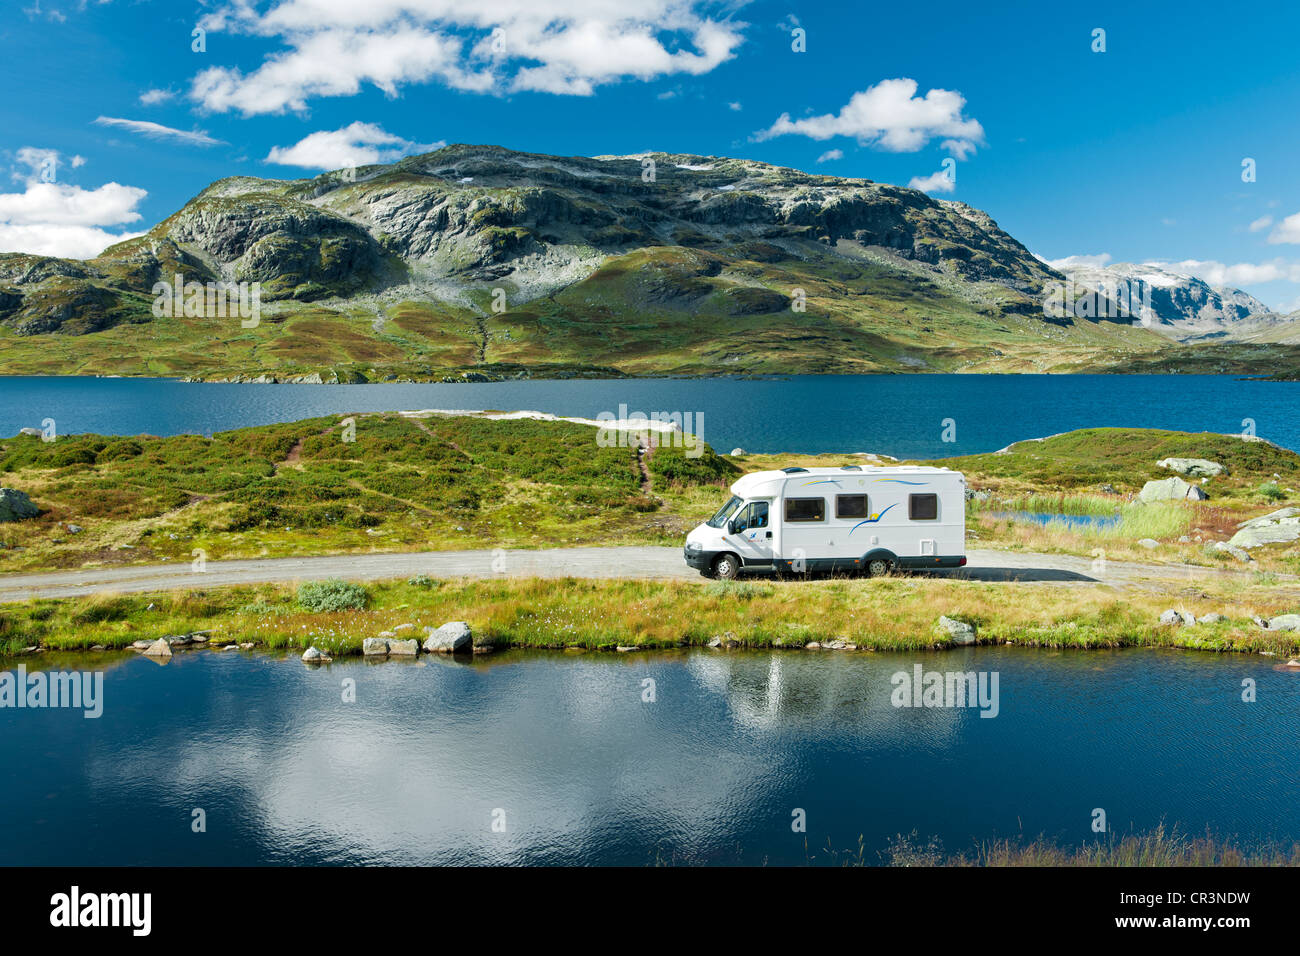 Campervan, camping in the mountains at lake Stavatn, Telemark, Norway, Europe - Stock Image